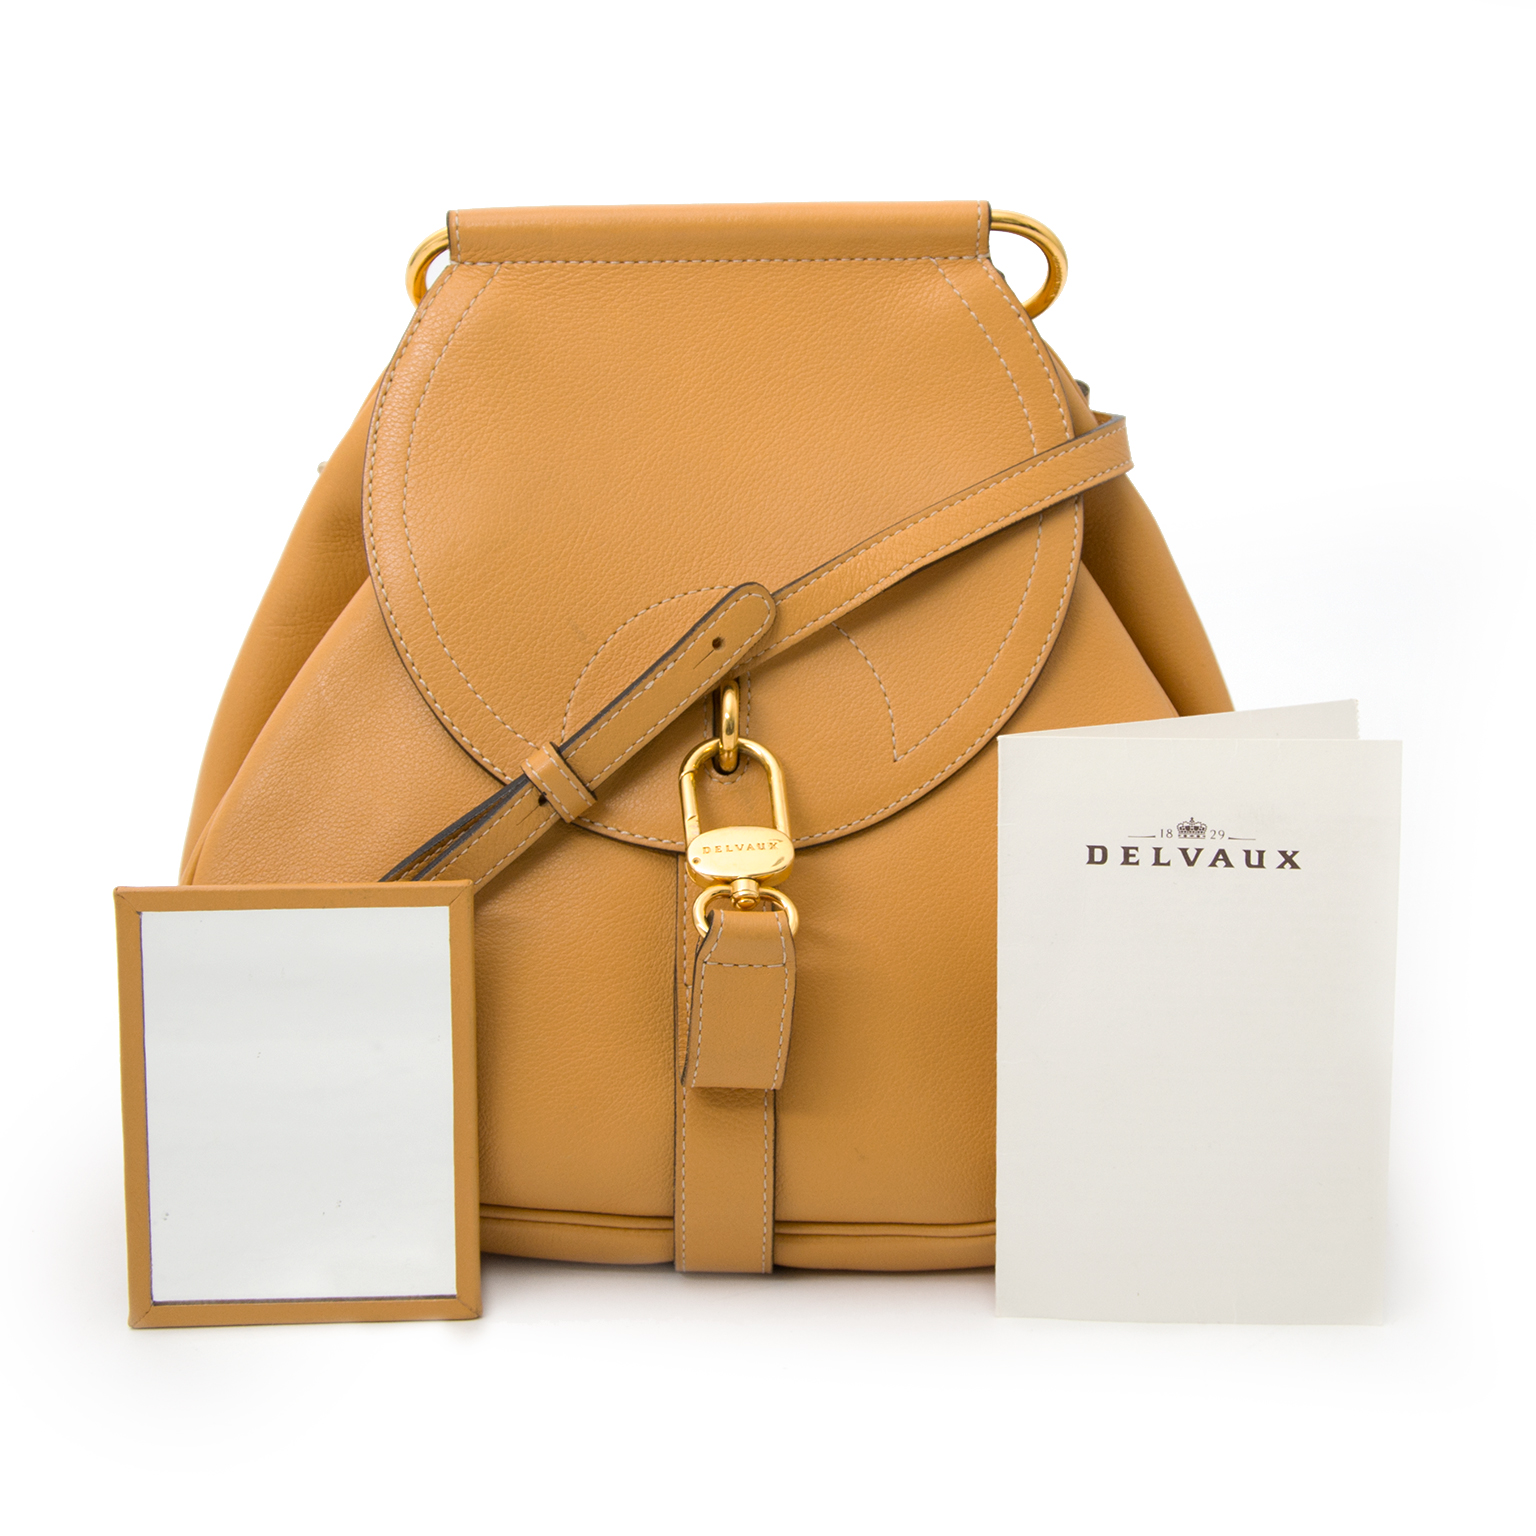 delvaux pm ocher cerceau crossbody bag now online at labellov.com for the best price.